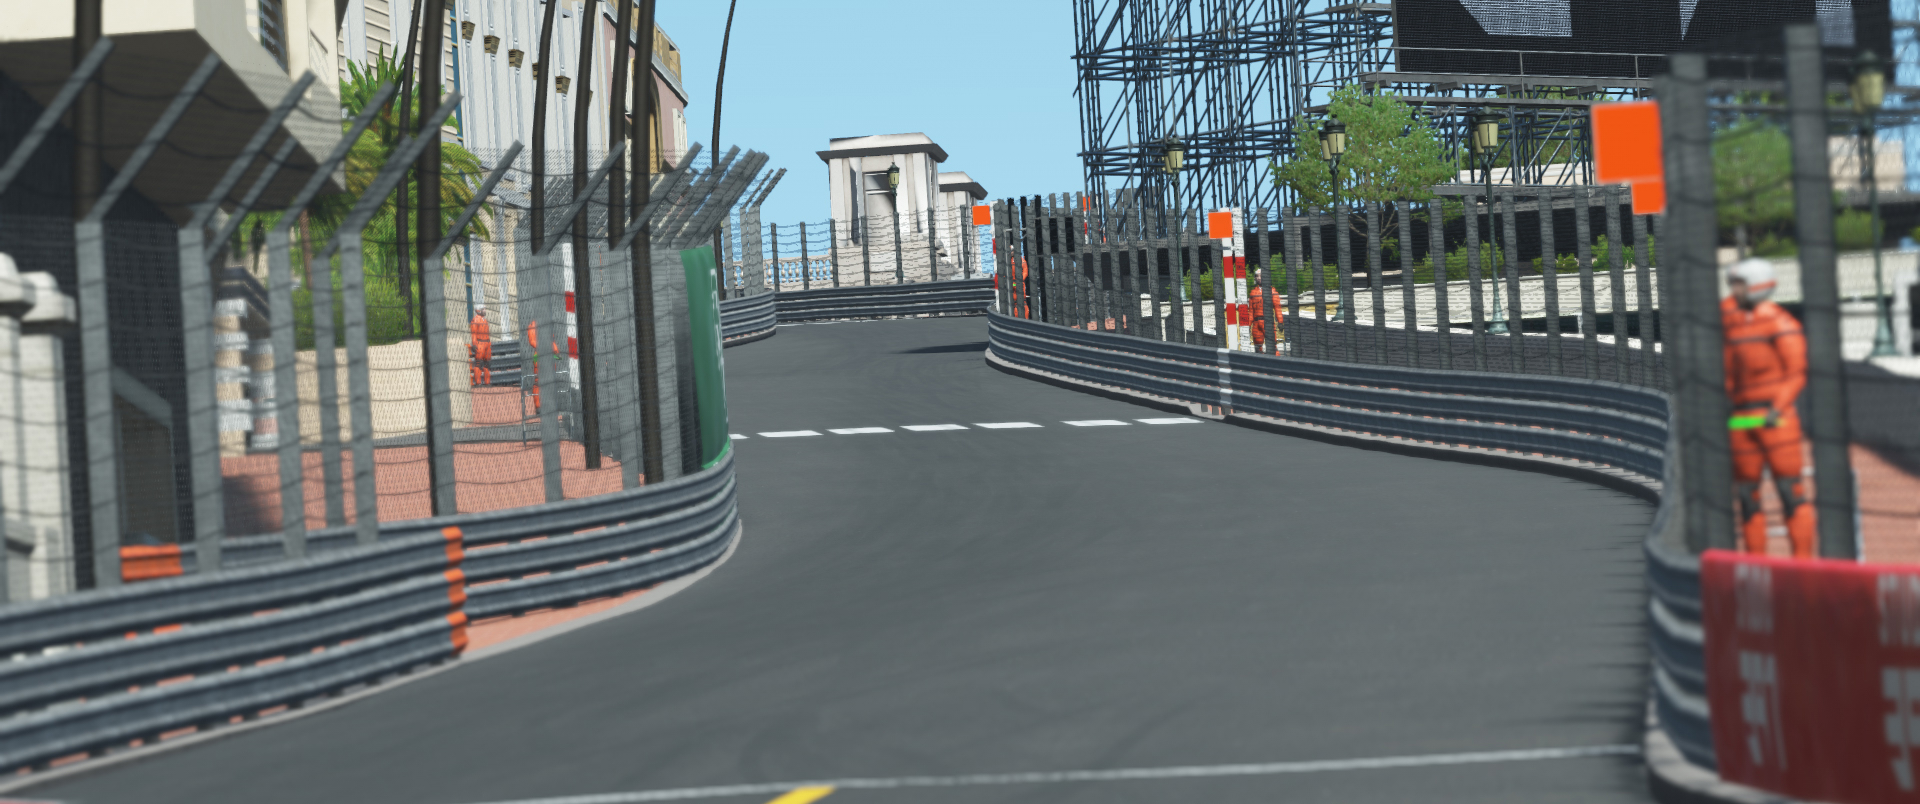 rFactor 2 ClientID 6438124 Release Candidates Available